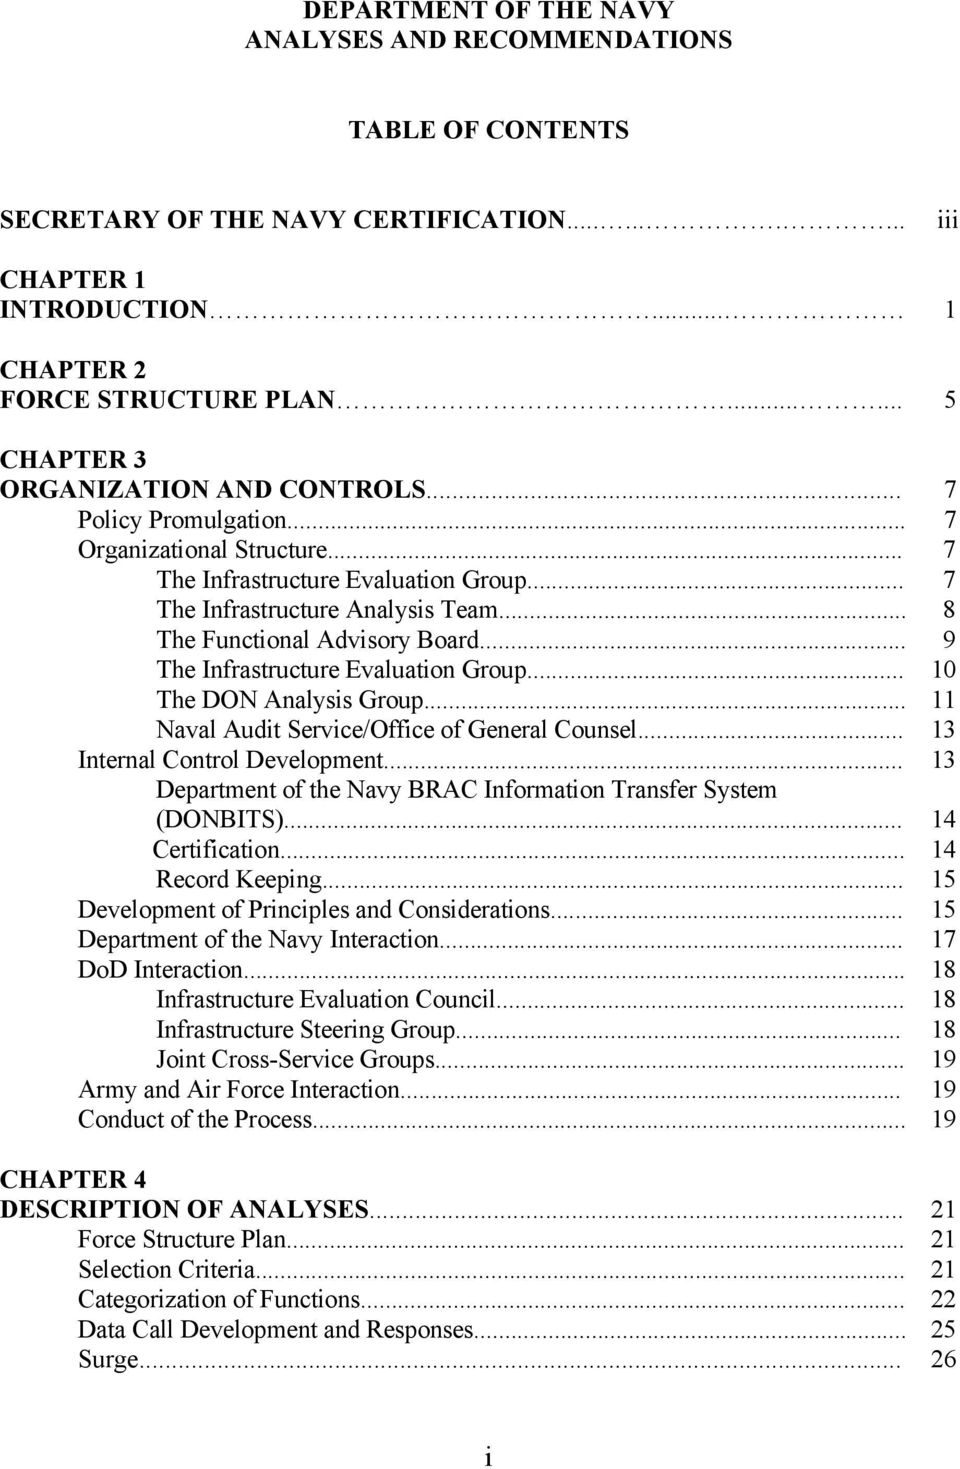 .. 8 The Functional Advisory Board... 9 The Infrastructure Evaluation Group... 10 The DON Analysis Group... 11 Naval Audit Service/Office of General Counsel... 13 Internal Control Development.